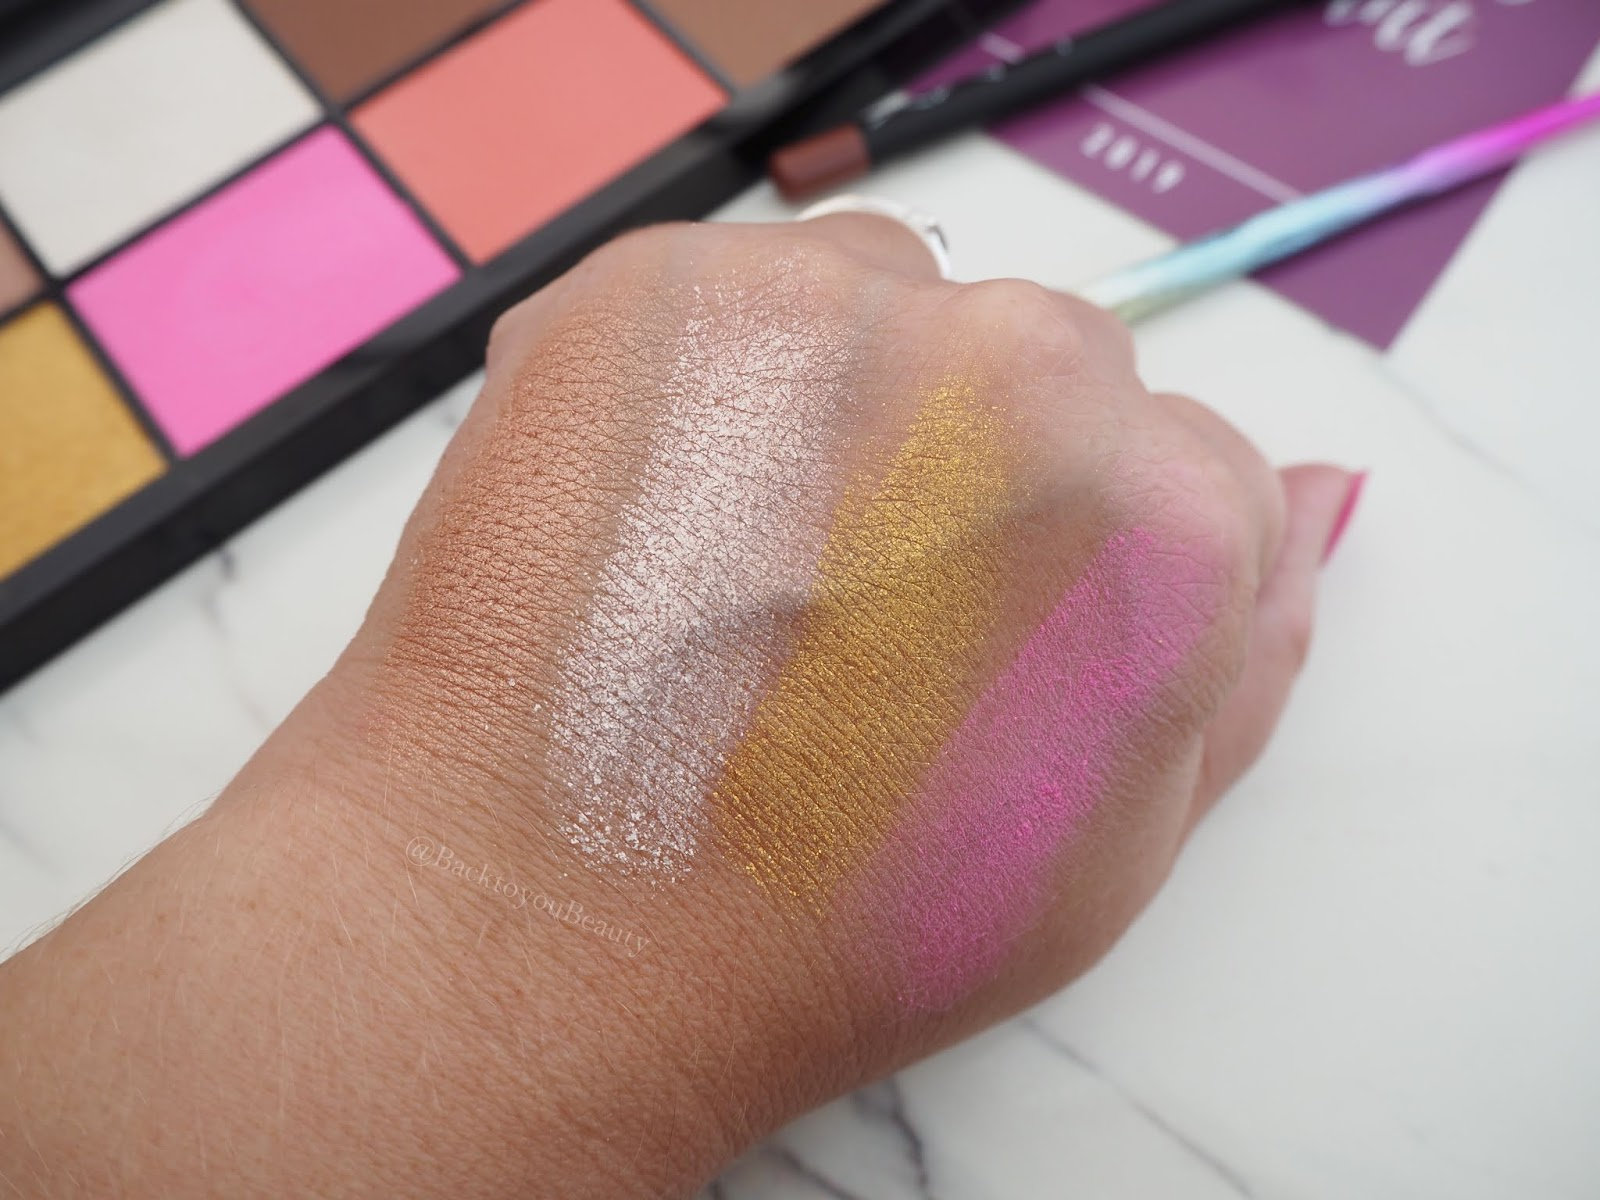 LMX Beauty Face Palette Swatches 1